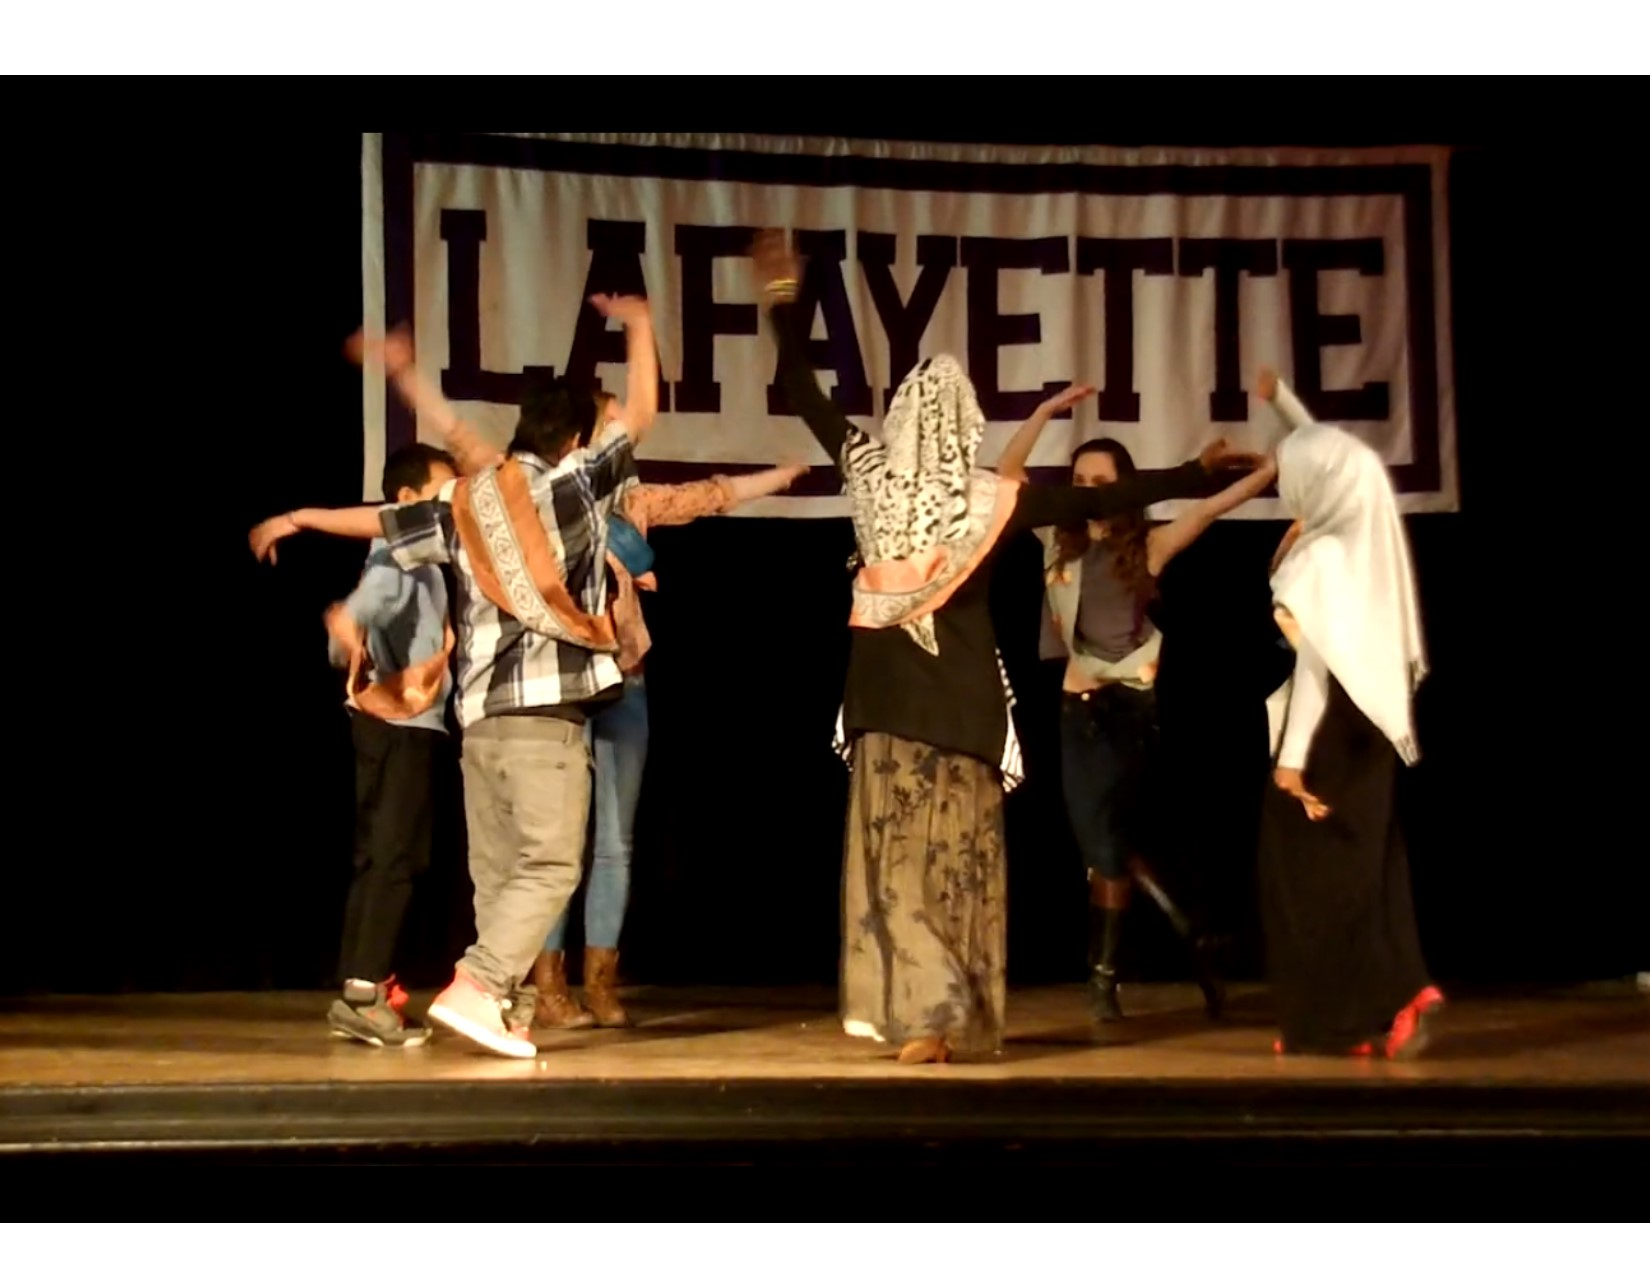 students dancing on stage in front of a lafayette banner